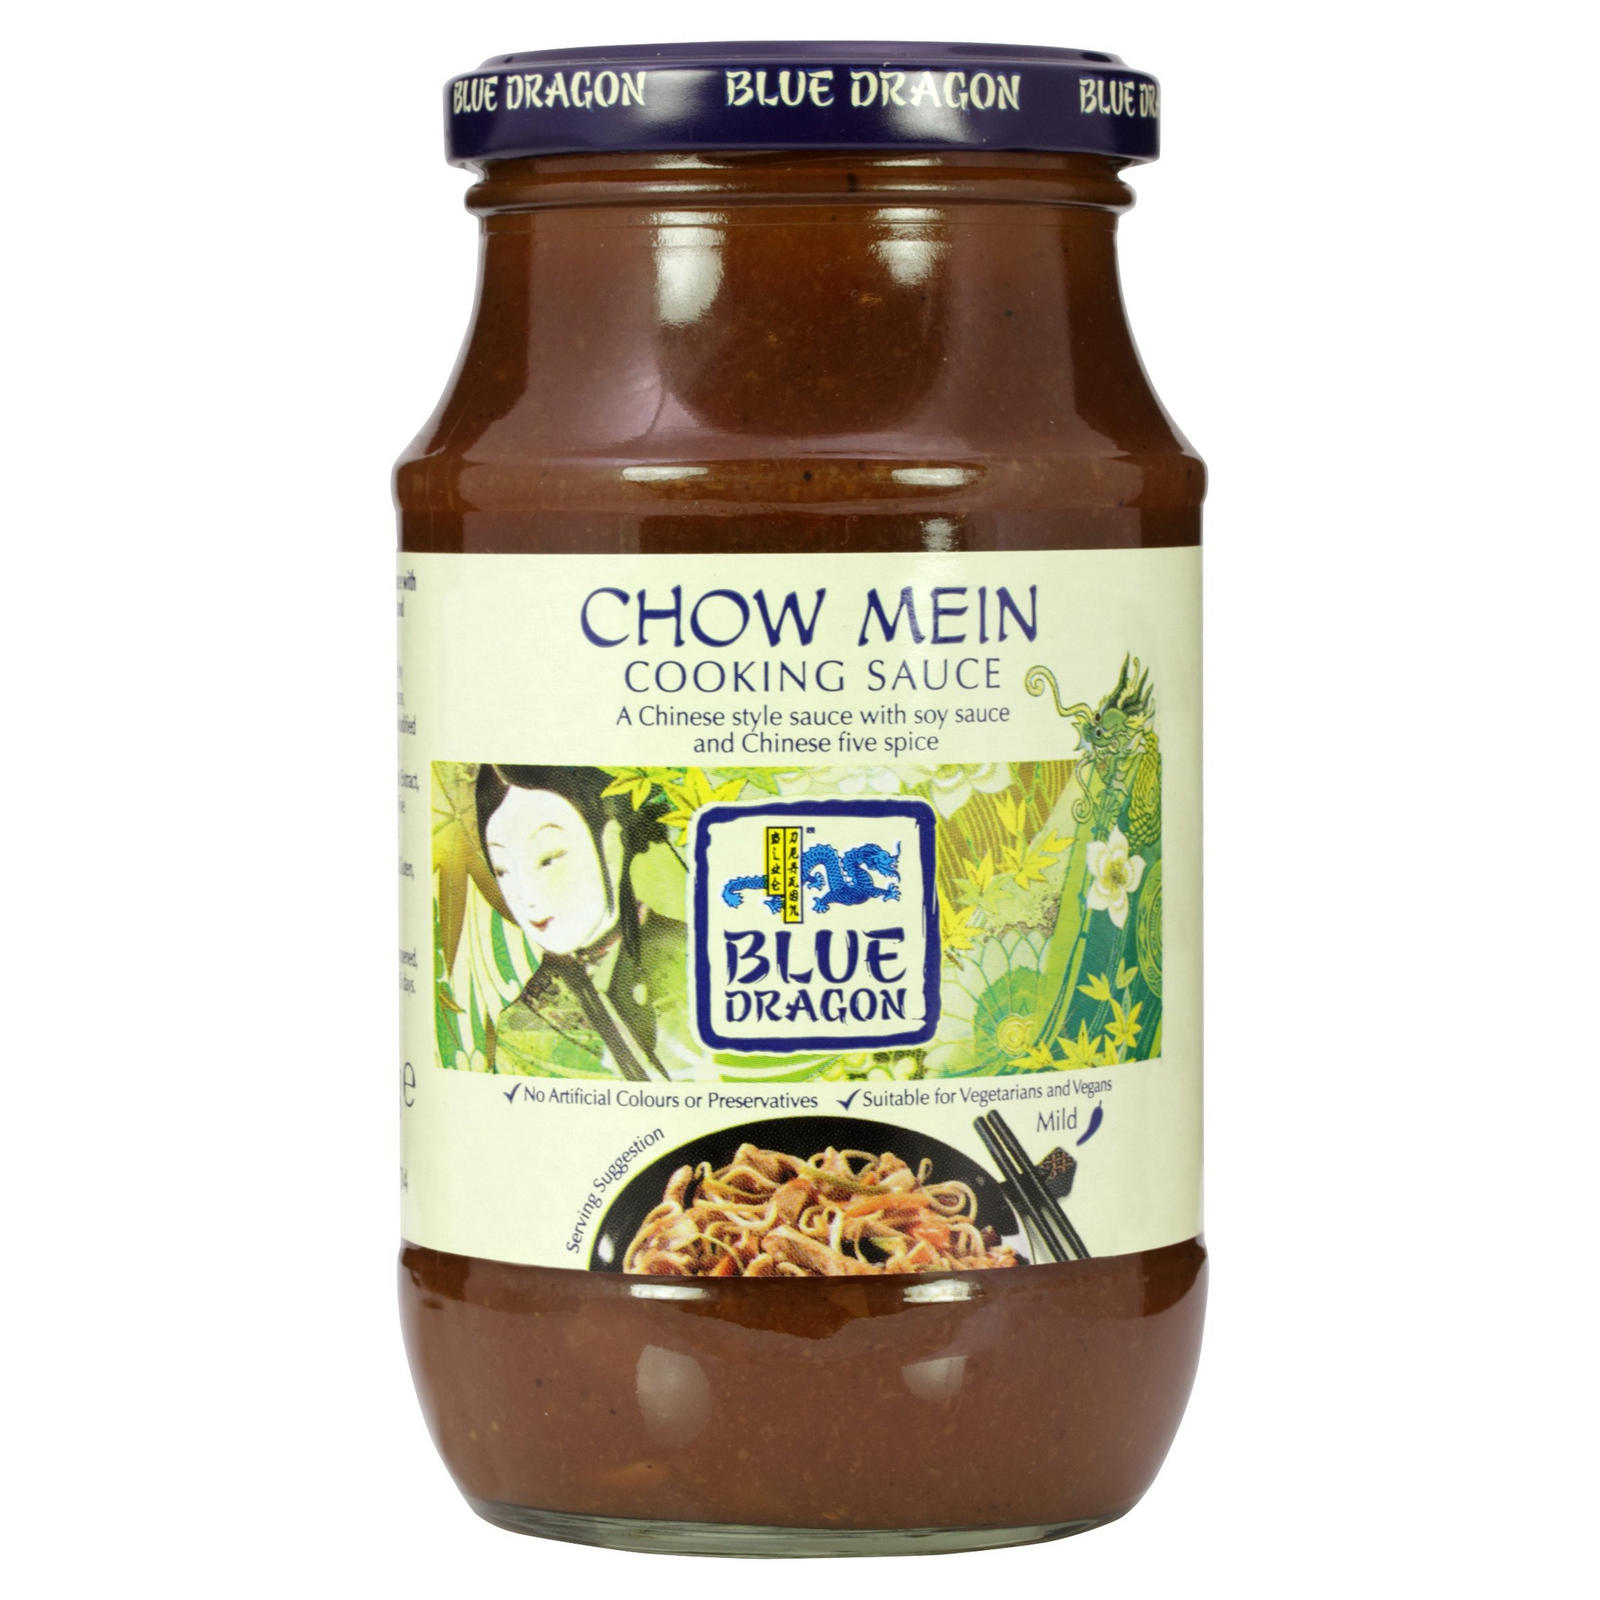 Blue Dragon Chow Mein Cooking sauce